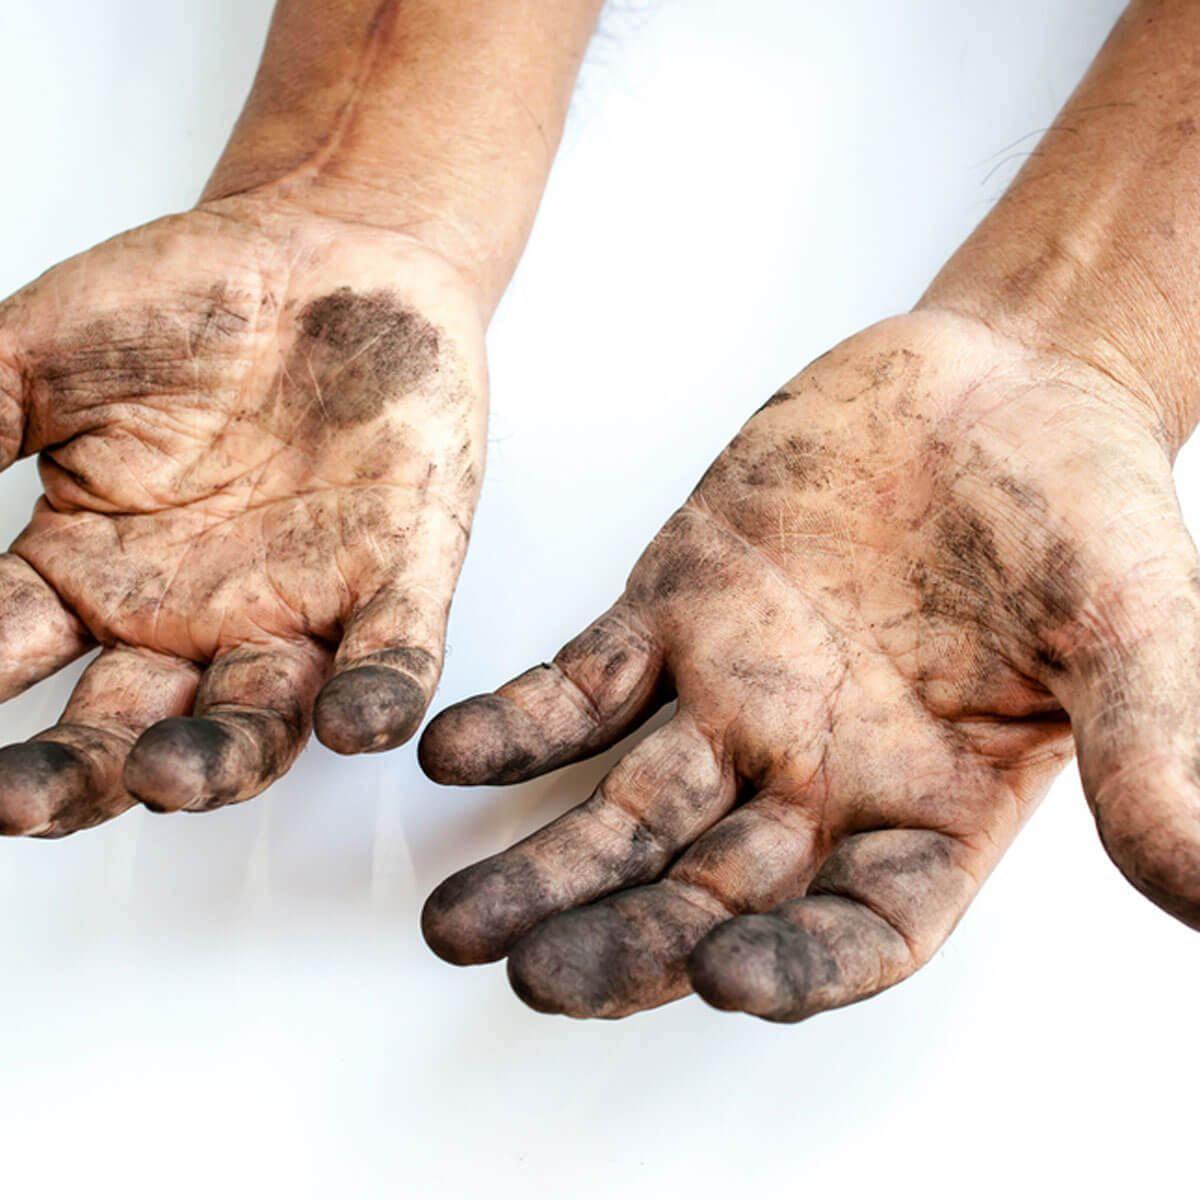 Dirty greasy hands